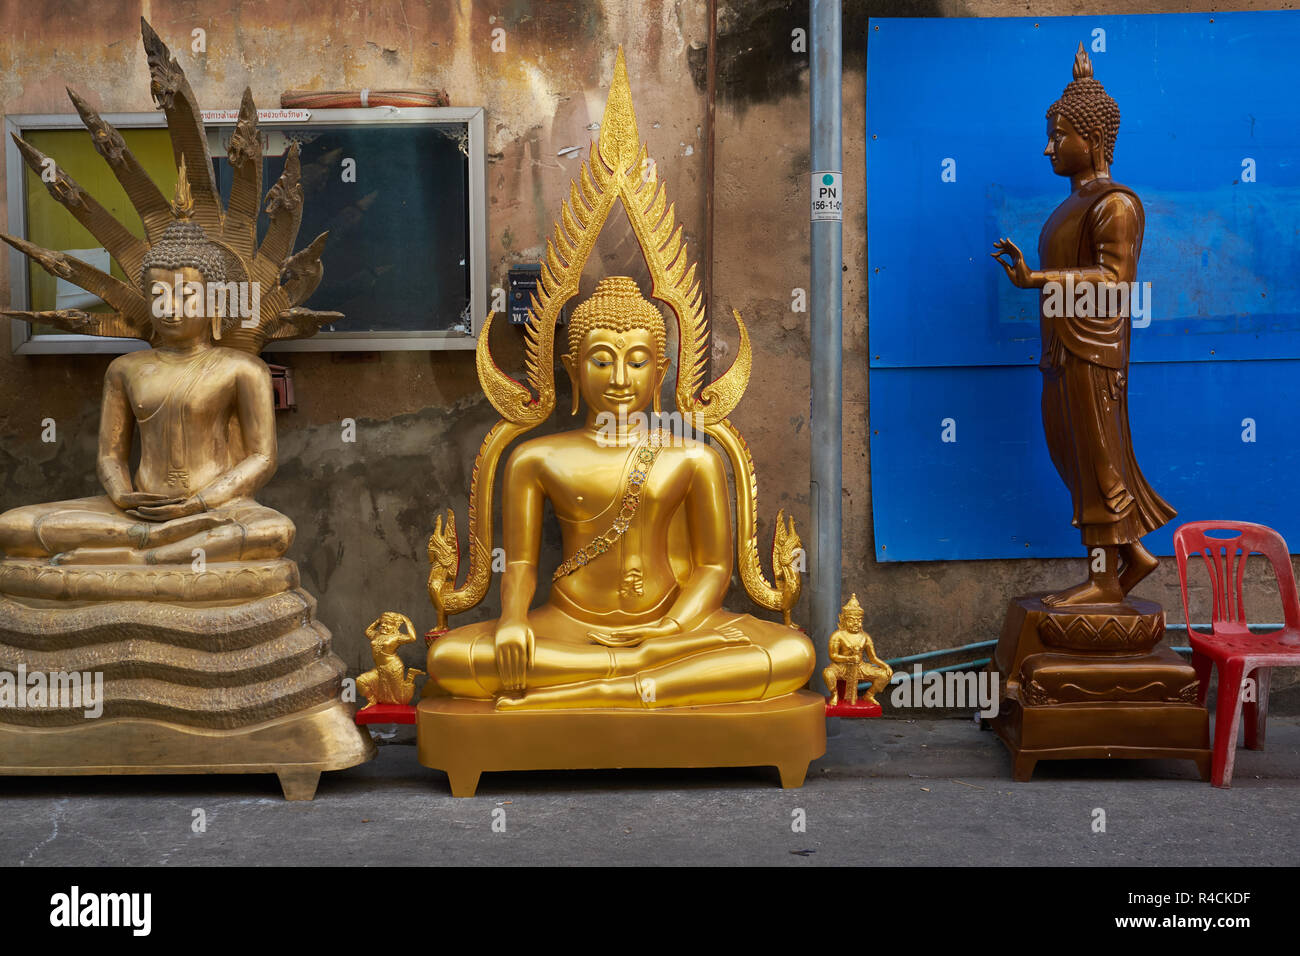 Outside a factory for religious artifacts in Bamrung Muang Rd., Bangkok, Thailand, Buddha statues await transportation to their buyers - Stock Image